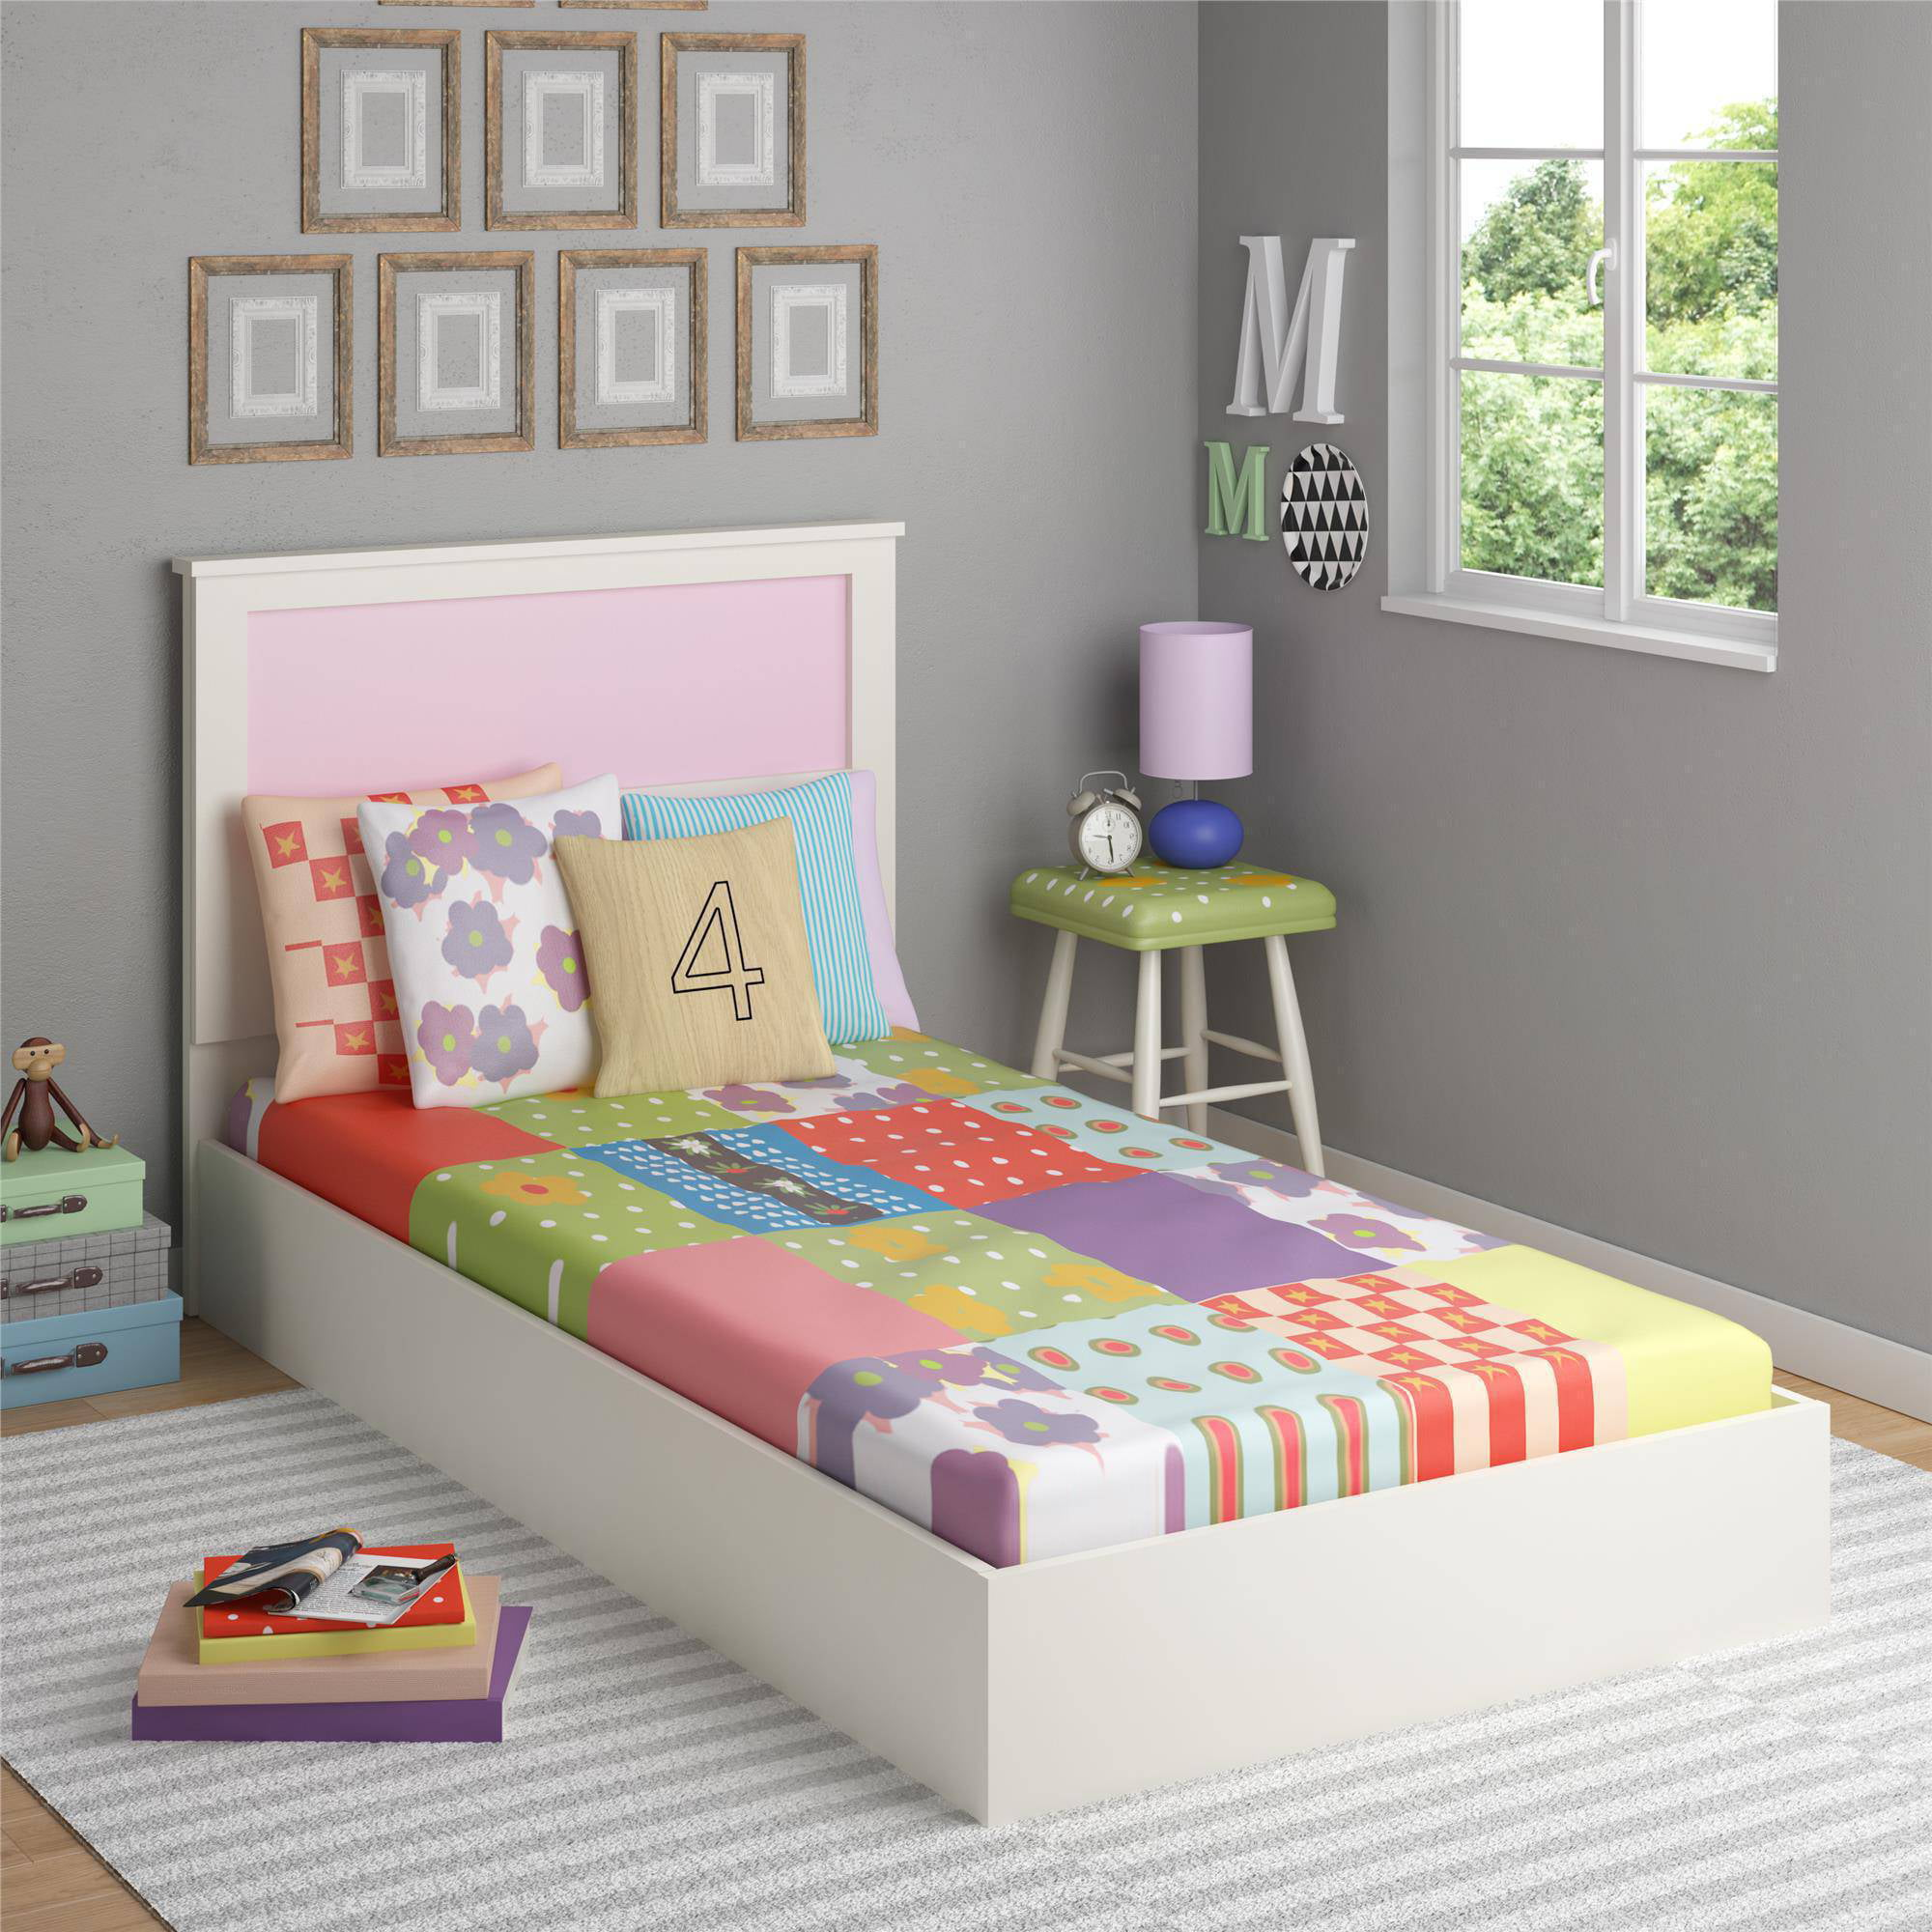 Kids Beds & Headboards Walmart